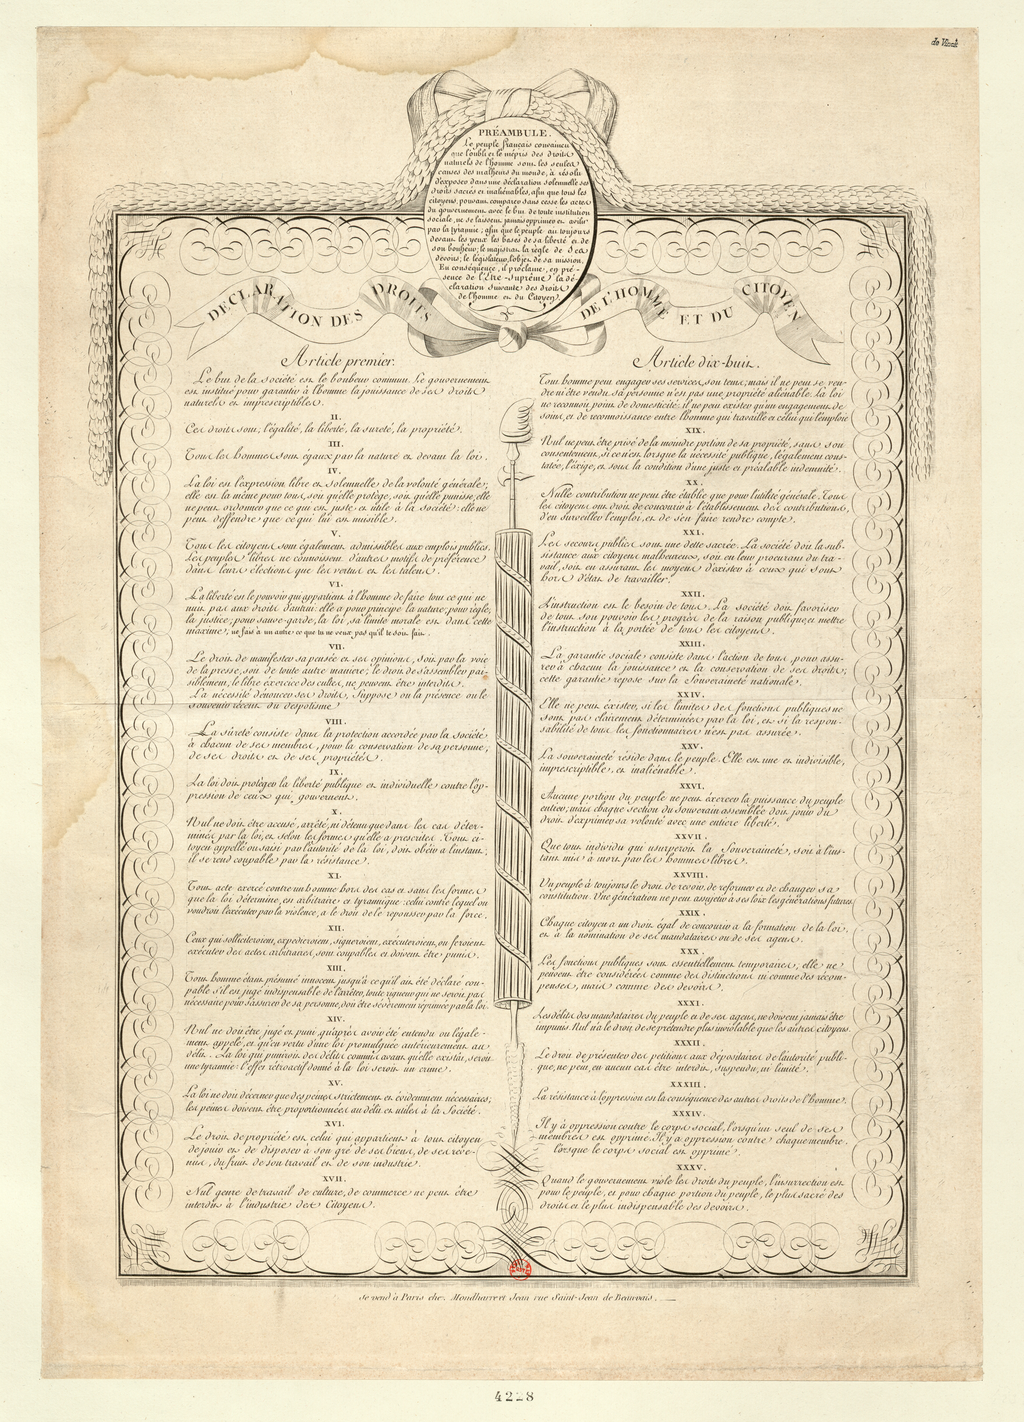 Declaration of the Rights of Man and of the Citizen Adopted by the National Assembly during its Sessions on August 20, 21, 25 and 26, 1789, and Approved by the King